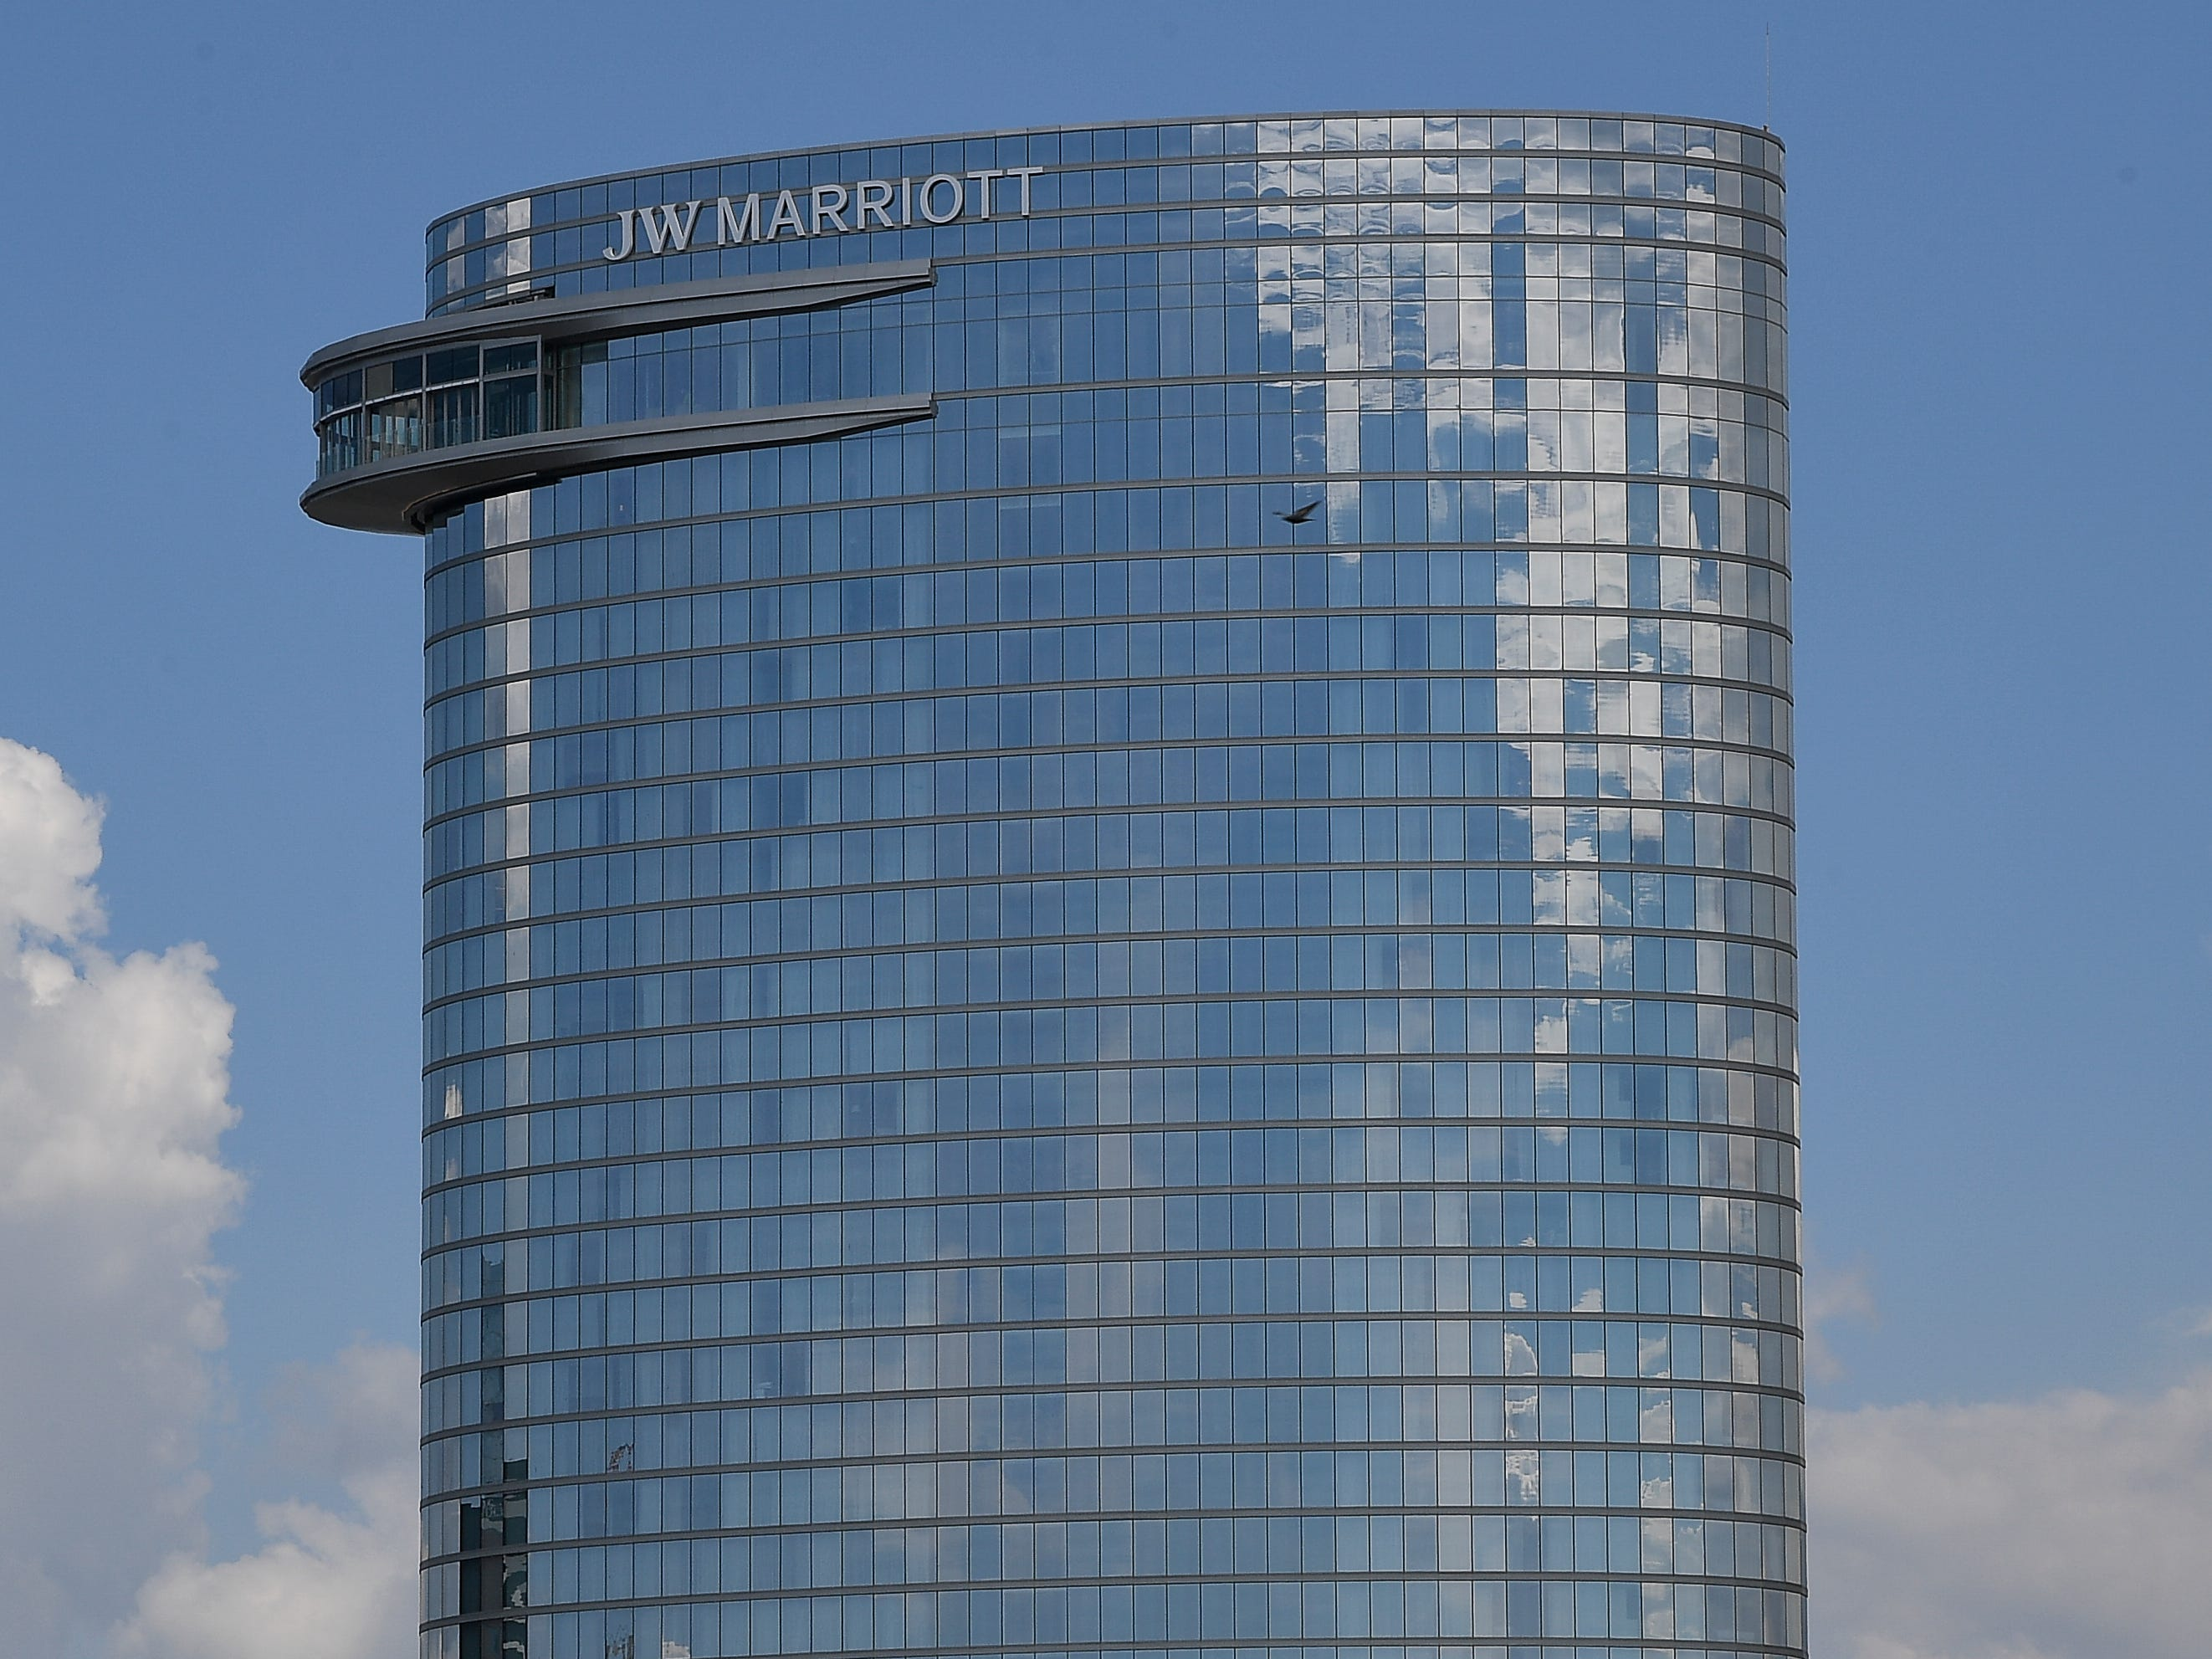 The JW Marriott Tuesday, July 17, 2018, in Nashville, Tenn. .